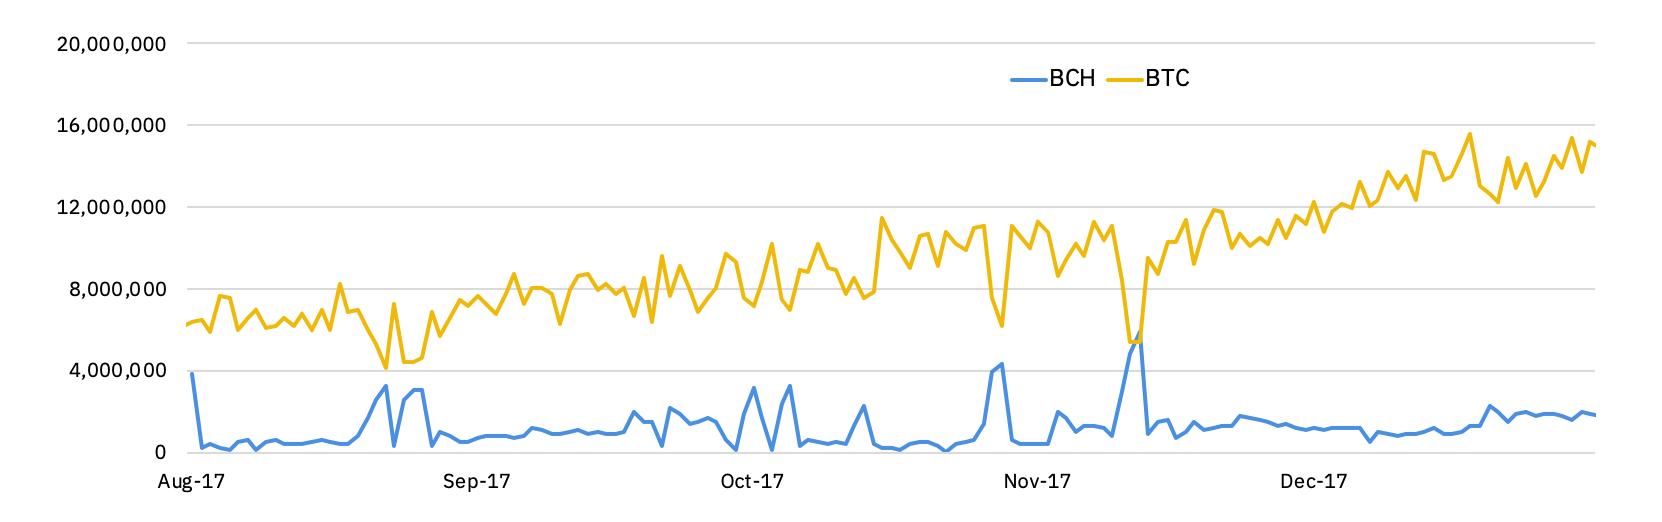 hashrates for BTC and BCH in 2017